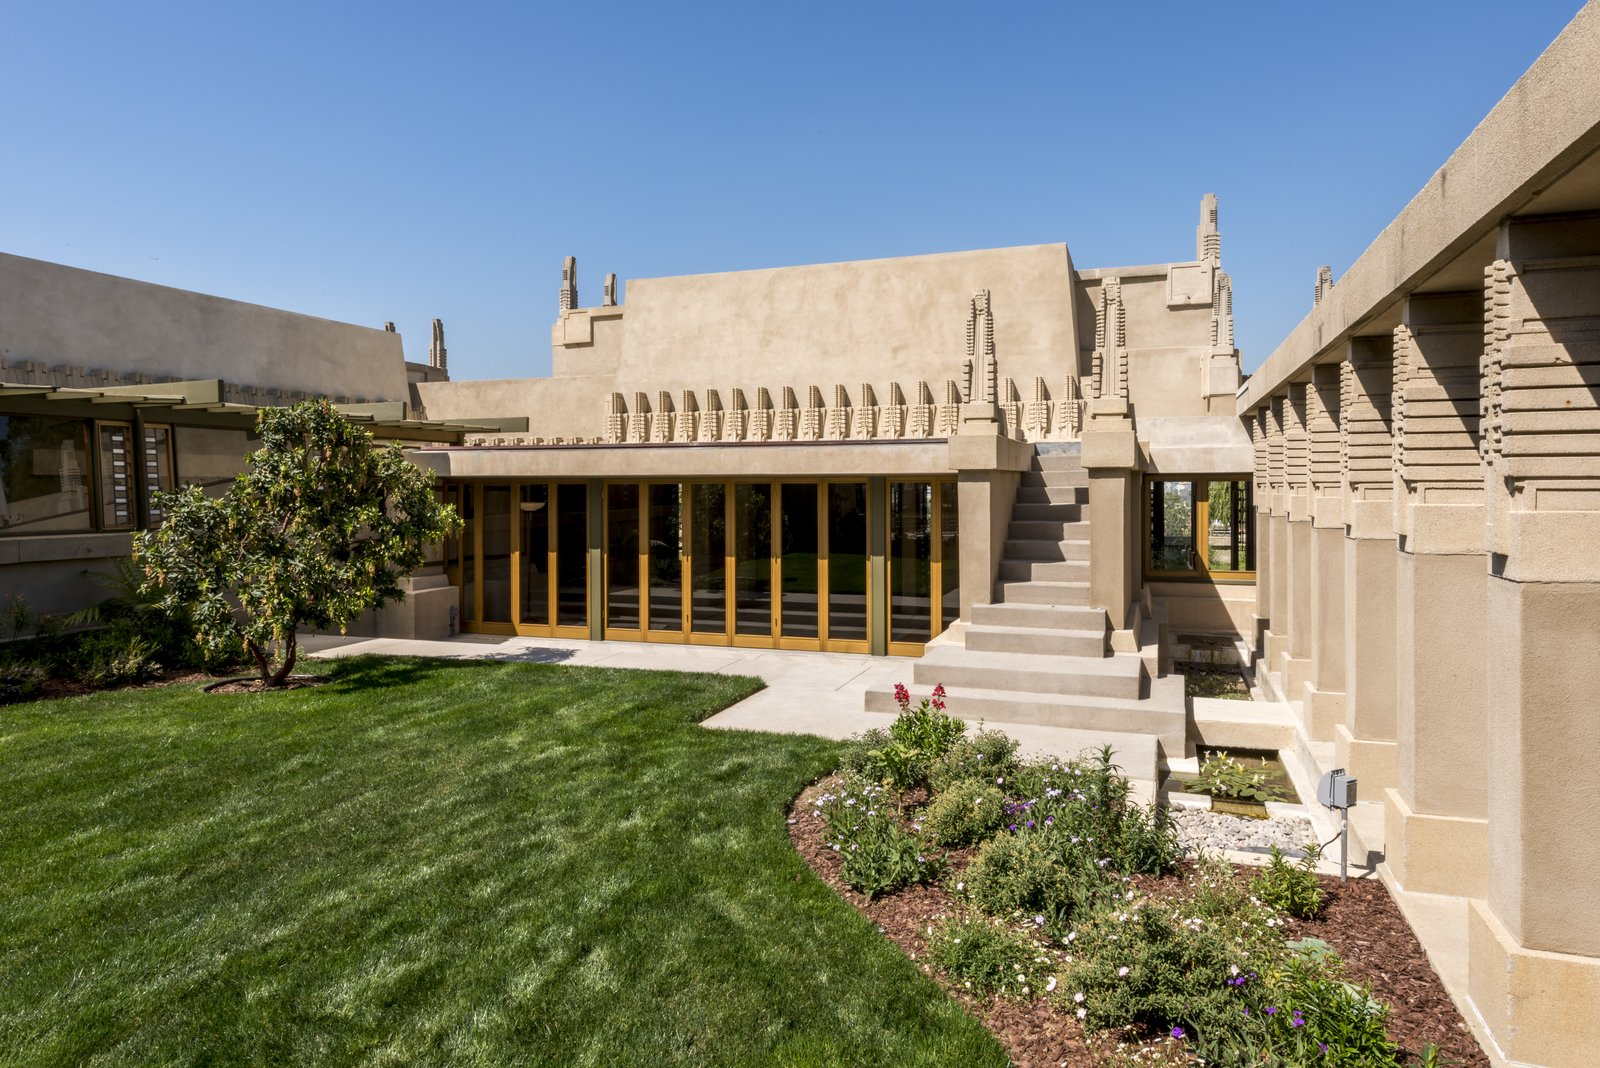 Frank Lloyd Wright's first Los Angeles project, Hollyhock House, received a meticulous repair and $4.3 million restoration, reflecting a major achievement for the City of Los Angeles and strong civic stewardship.  Photo 3 of 7 in 7 Preserved Modern Architecture Icons in Los Angeles